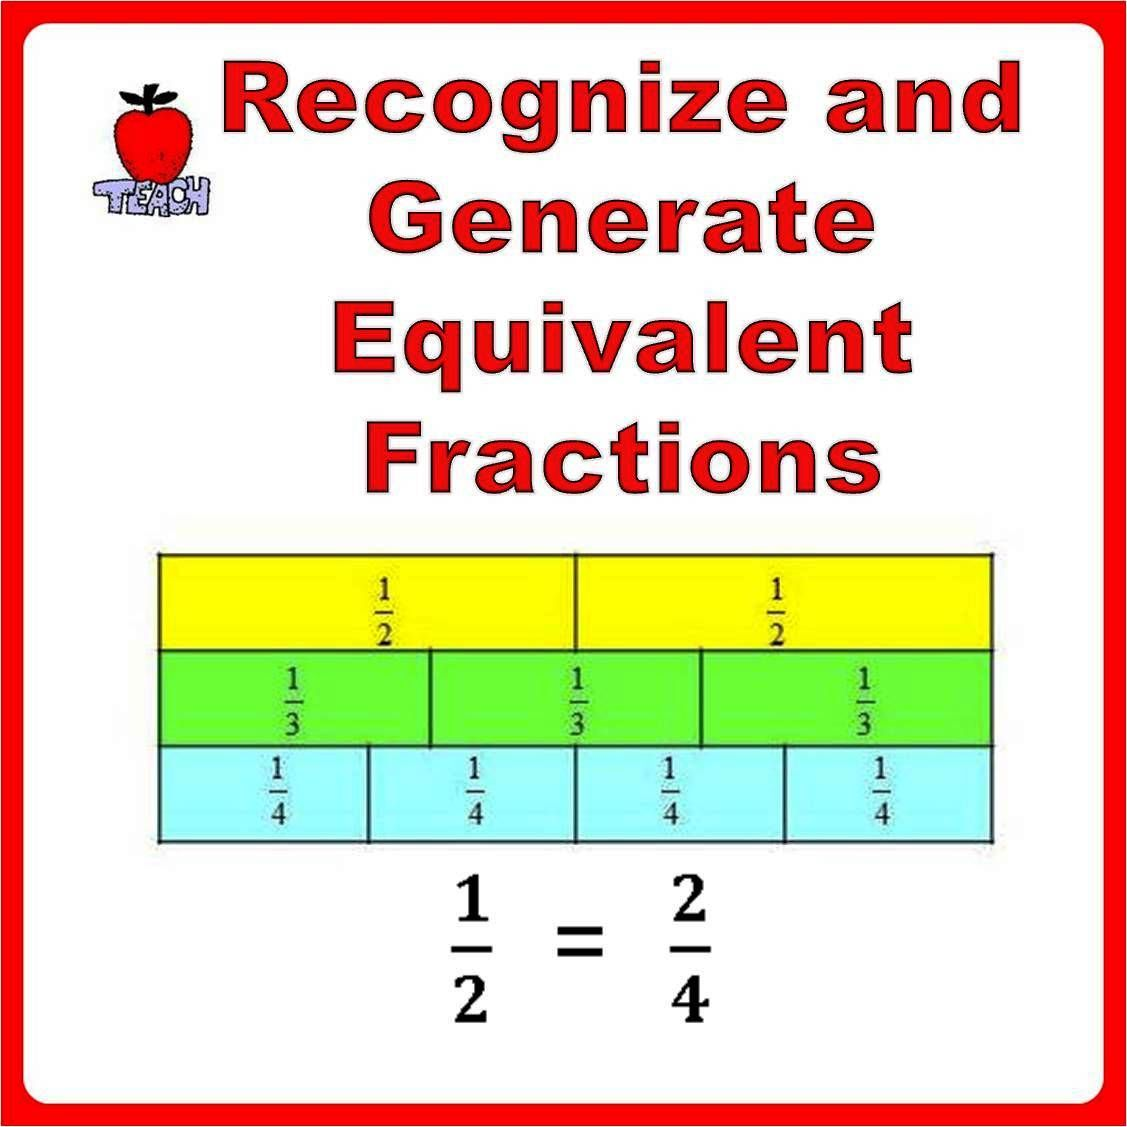 Recognize And Generate Simple Equivalent Equations Based On Fraction Wall Model Kids Learn To Identi Fractions Worksheets Fractions 4th Grade Math Worksheets